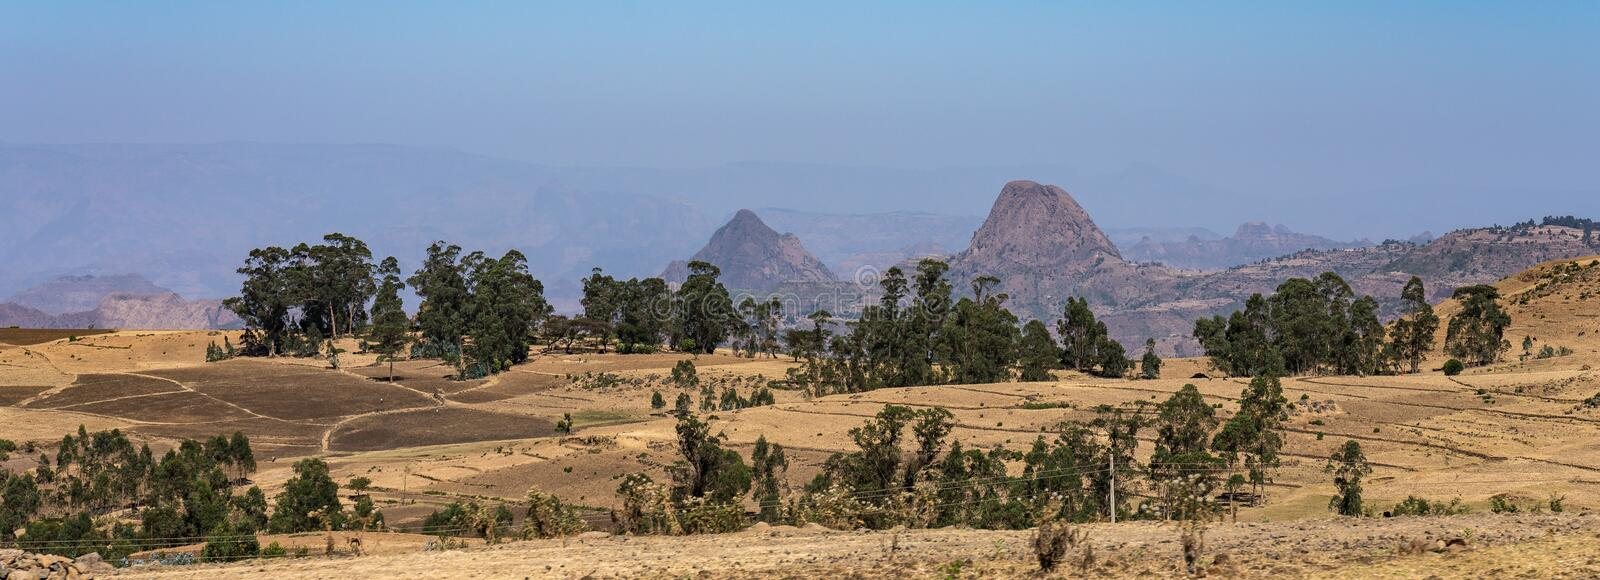 Landscape view between Gondar and the Simien mountains, Ethiopia, Africa. Landscape view on the road from Gondar to the Simien mountains, Noth Ethiopia, Africa stock images